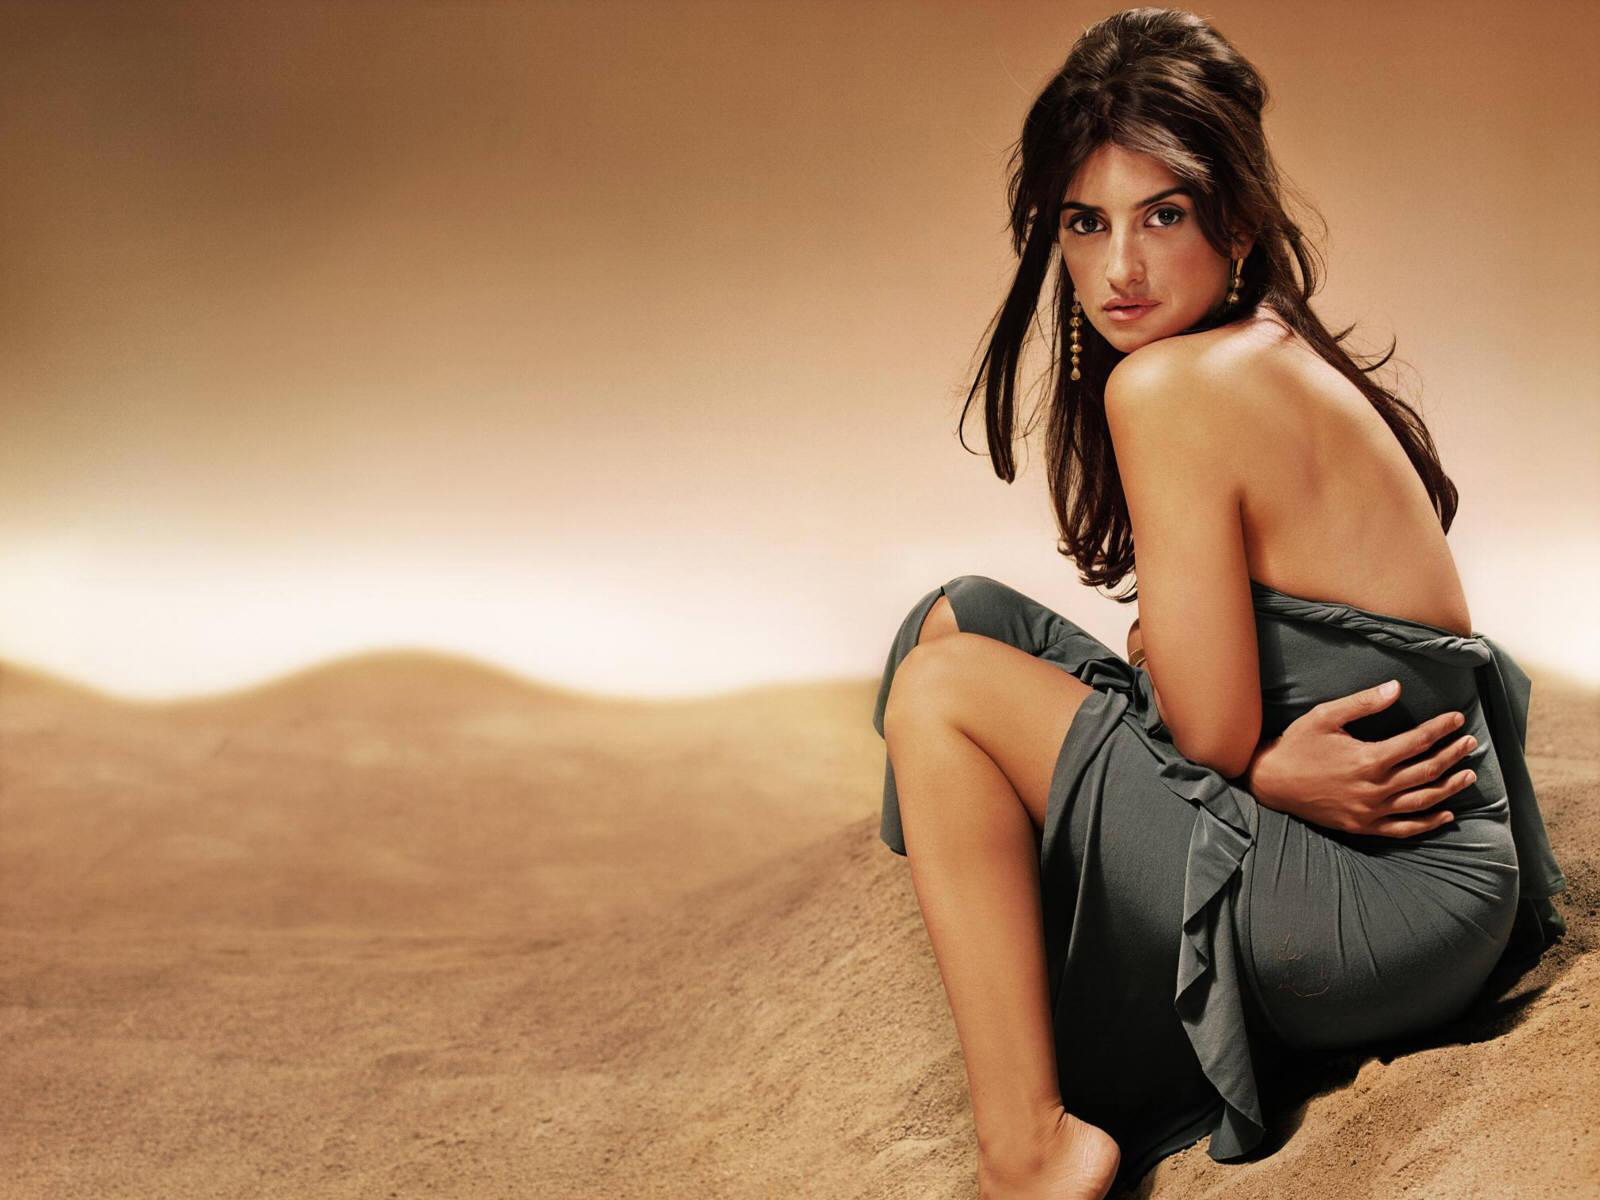 http://1.bp.blogspot.com/-RjPkqclJWSY/TliilP_oVeI/AAAAAAAABoY/Mik3Vk_Vxd8/s1600/The-best-top-desktop-penelope-cruz-wallpapers-hd-penelope-cruz-wallpaper-2.jpg